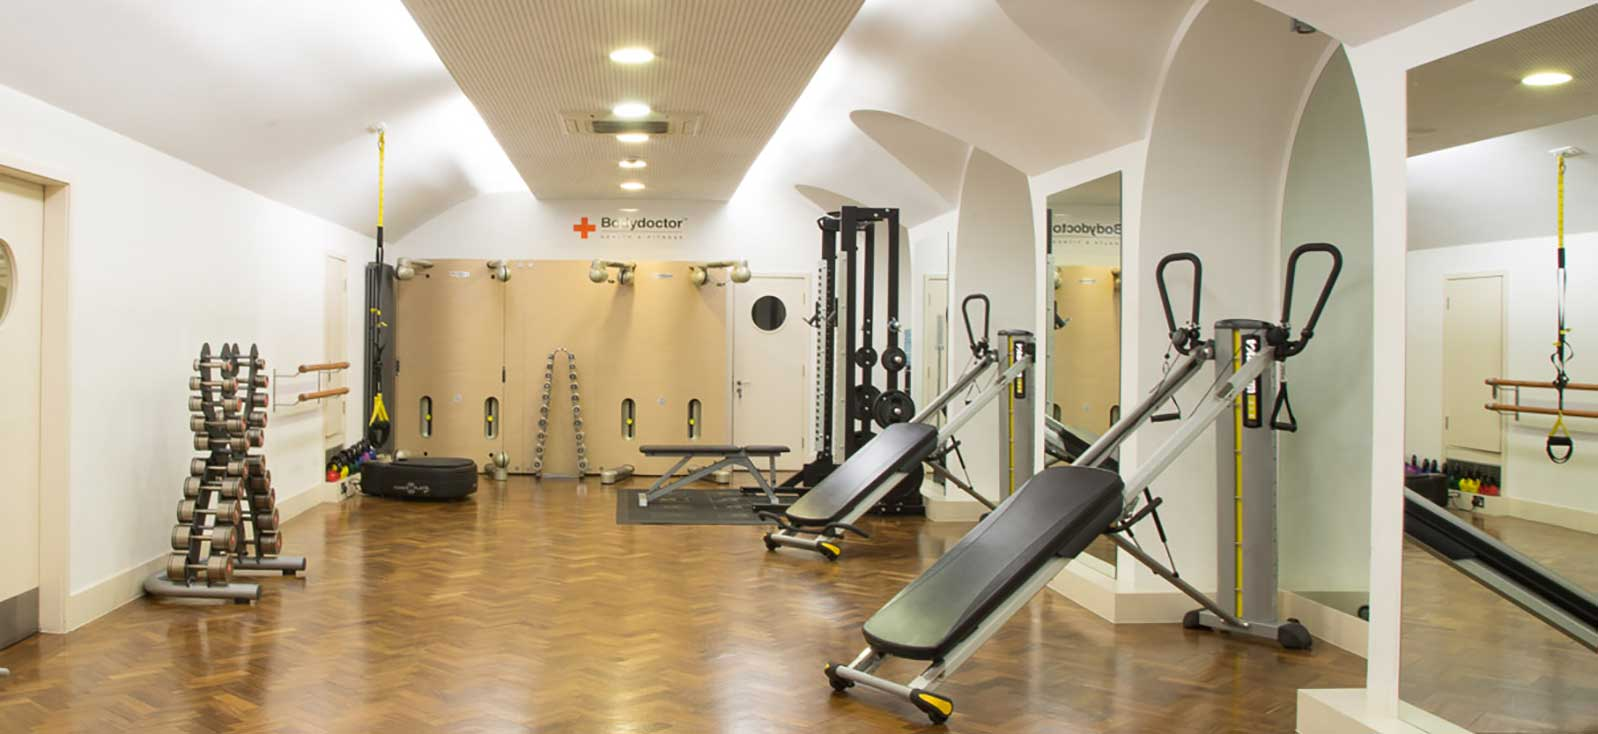 Our Belgravia Fitness Centre, with 1 client at a time we're keeping you safe and fit